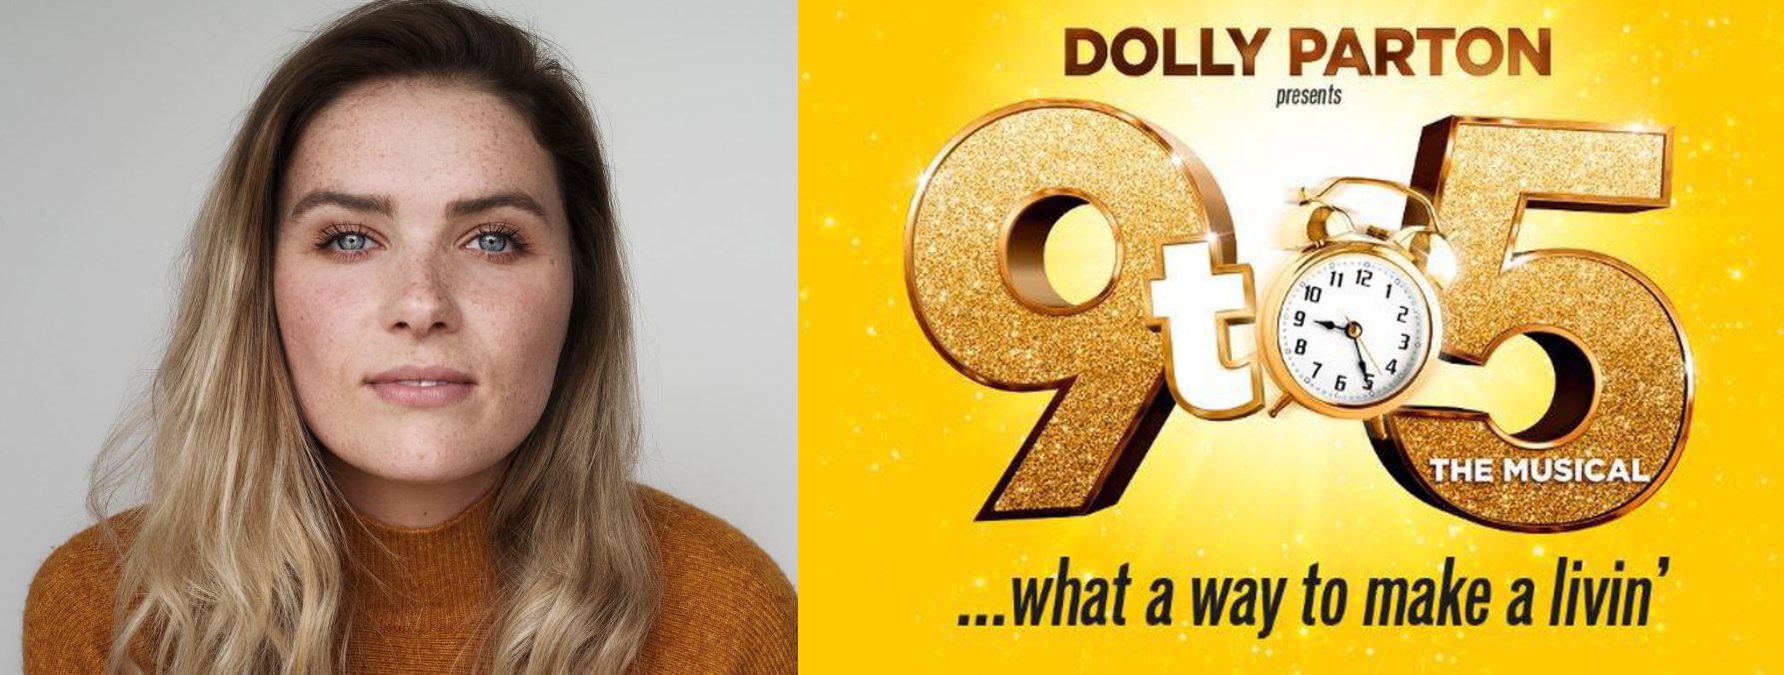 headshot of Chelsea Halfpenny with 9 to 5 promo image